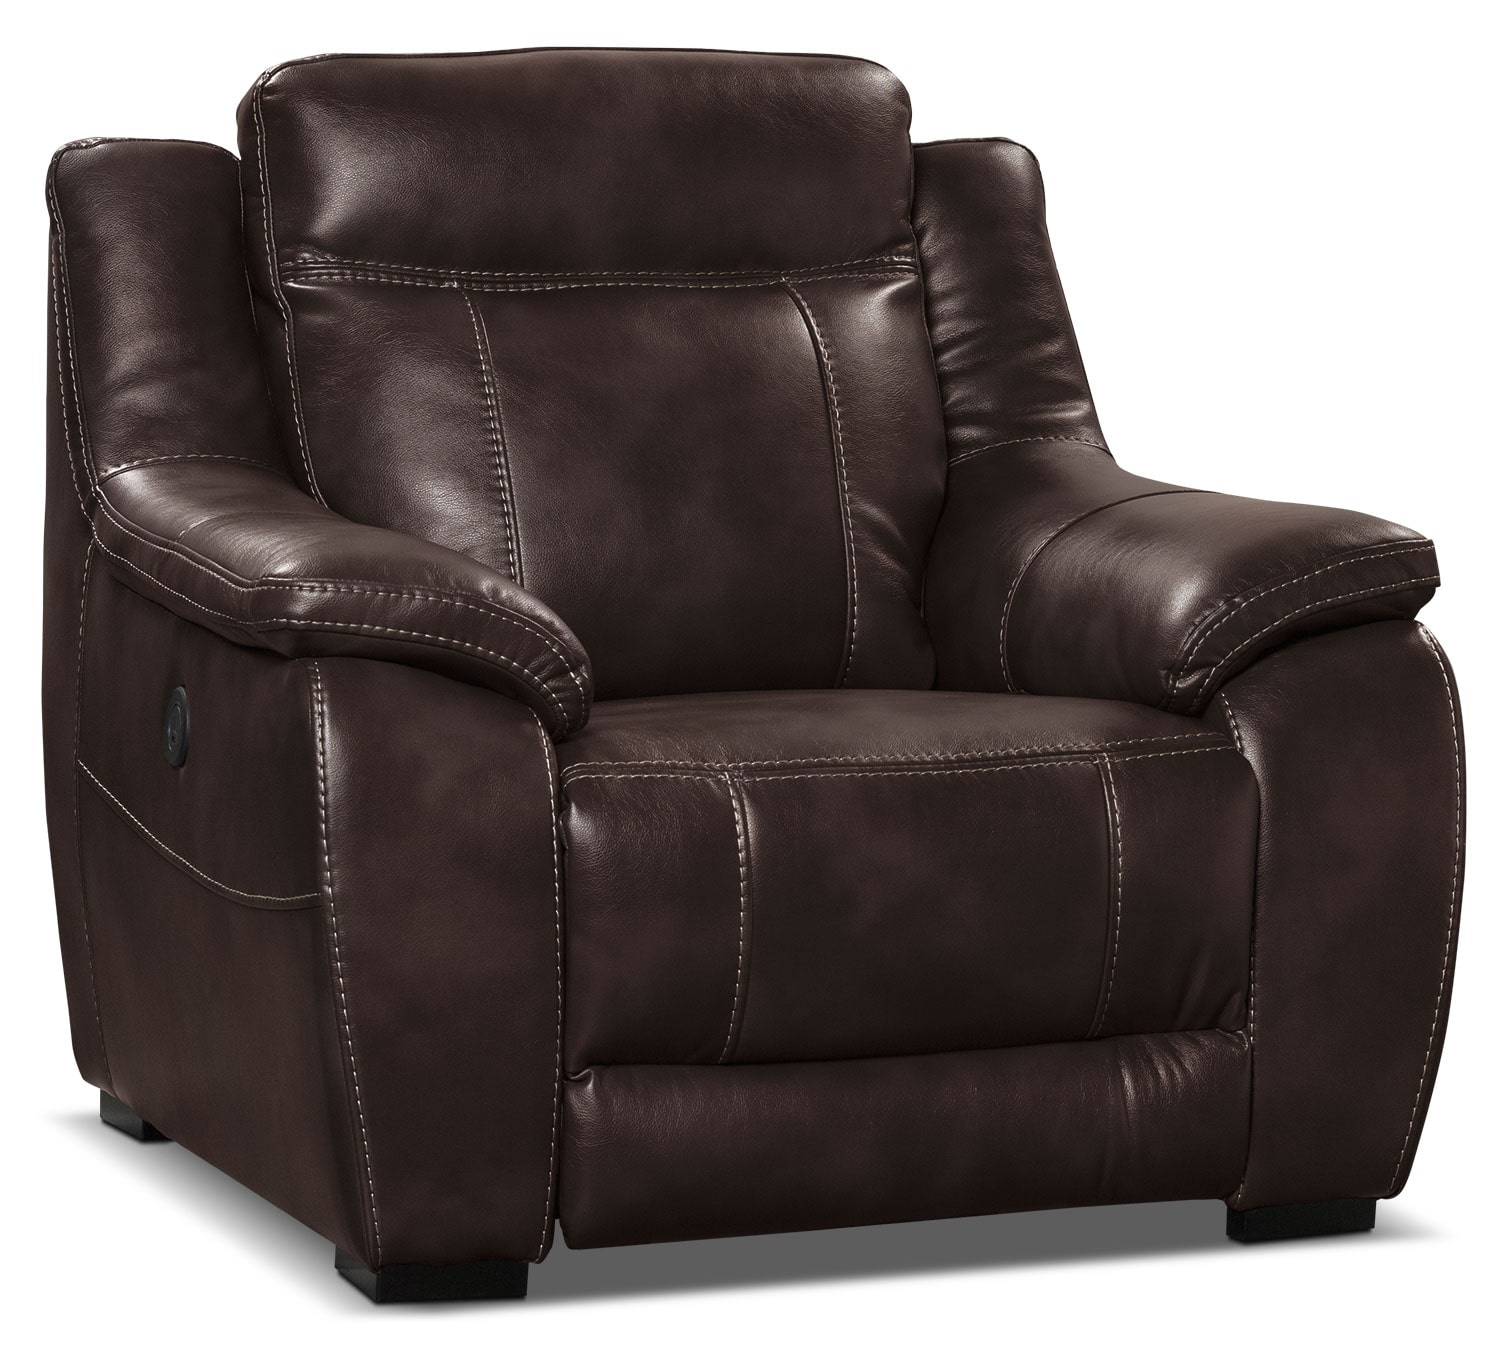 Living Room Furniture - Novo Leather-Look Fabric Power Reclining Chair – Brown